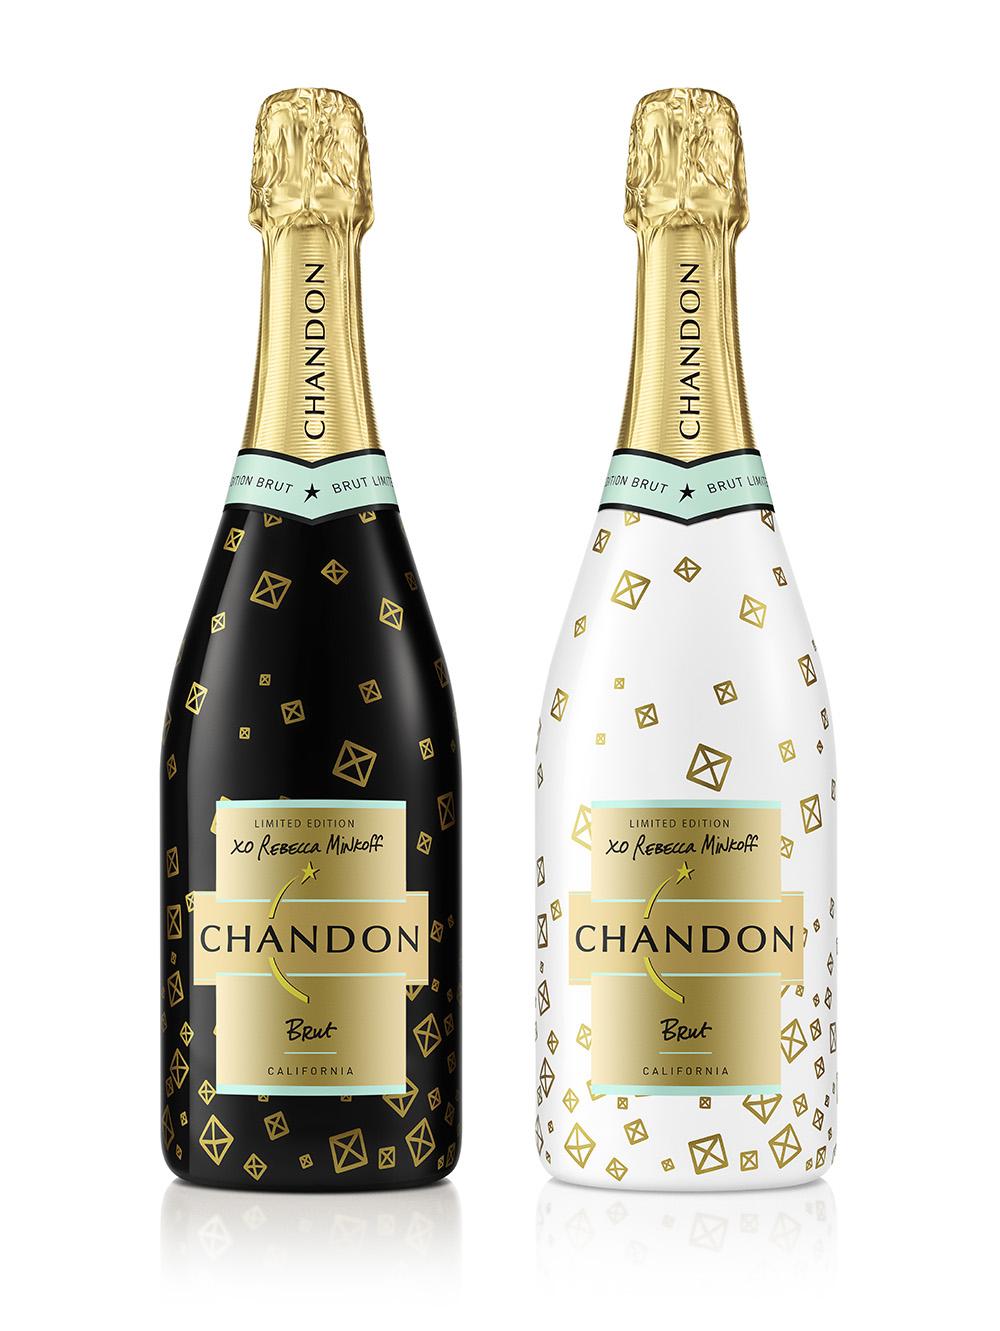 Domaine Chandon's limited edition holiday bottles designed by Rebecca Minkoff